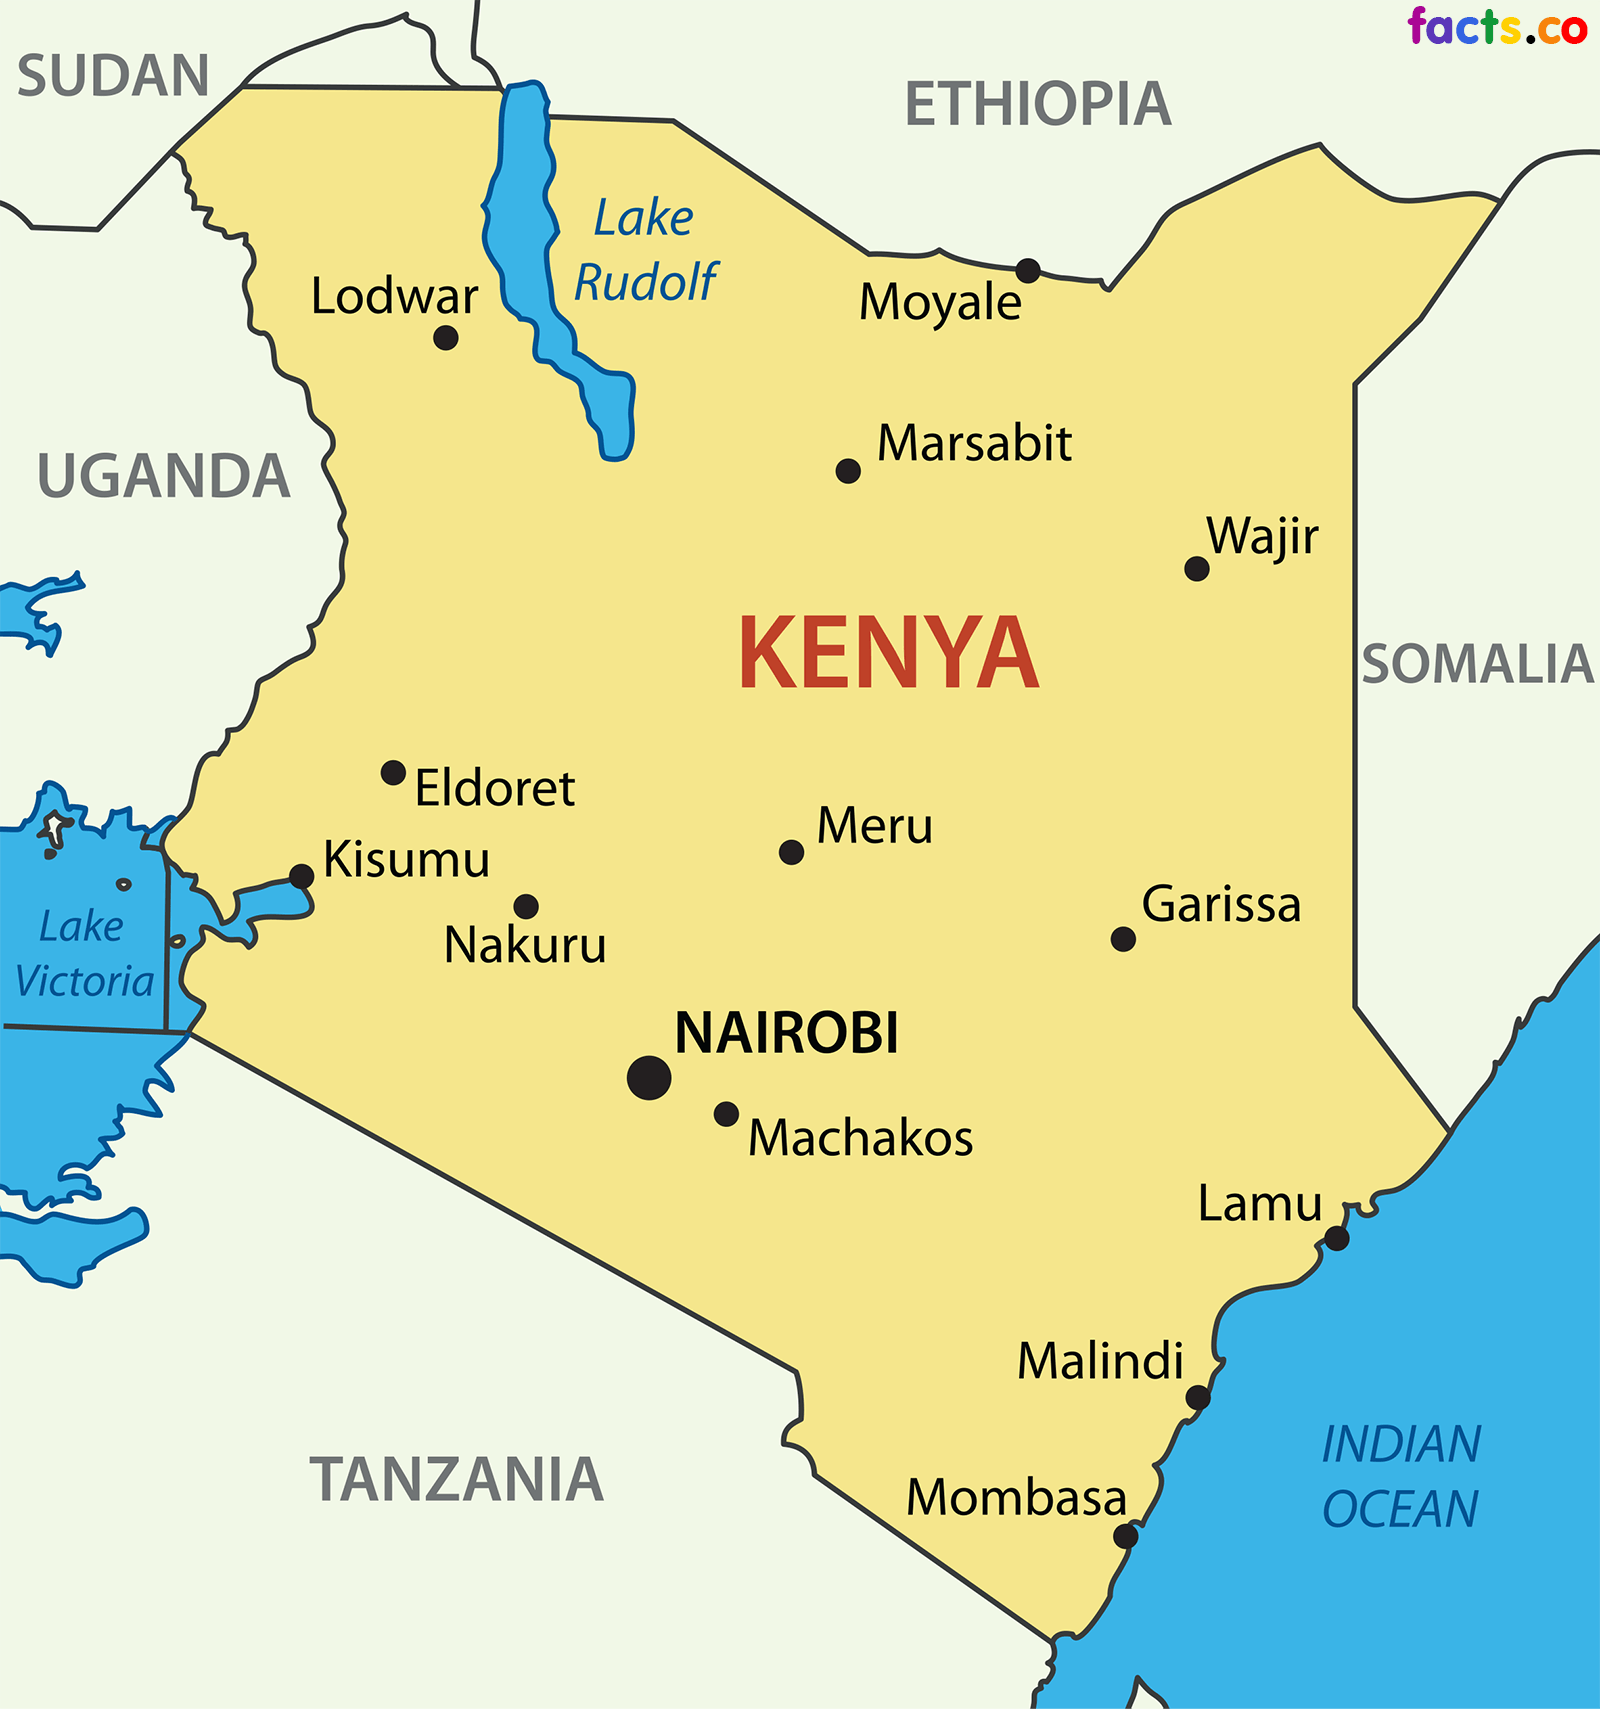 kenyan cities by size - Ibov.jonathandedecker.com